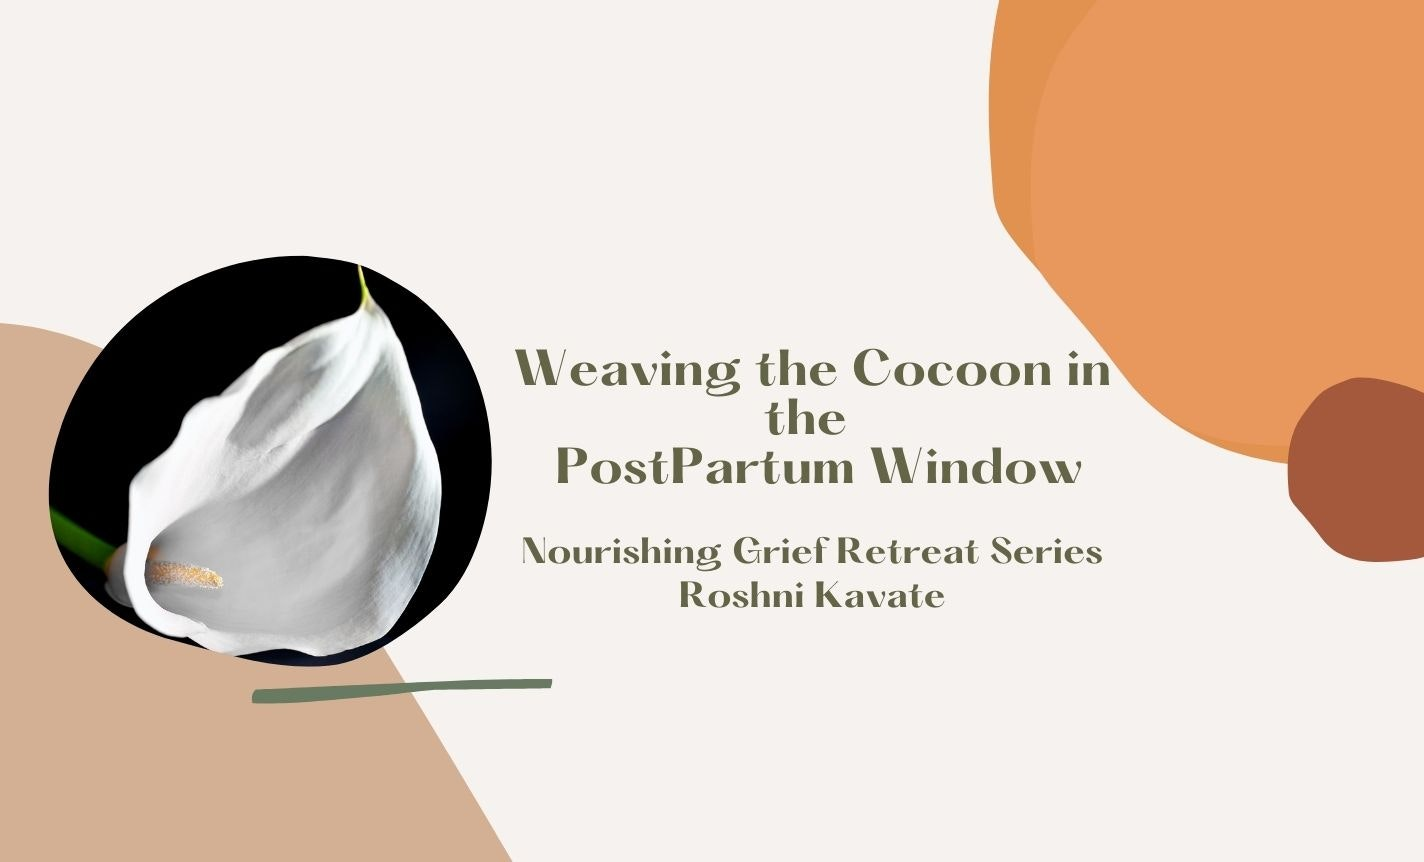 Weaving the Cocoon: Rebirth in the Postpartum Window